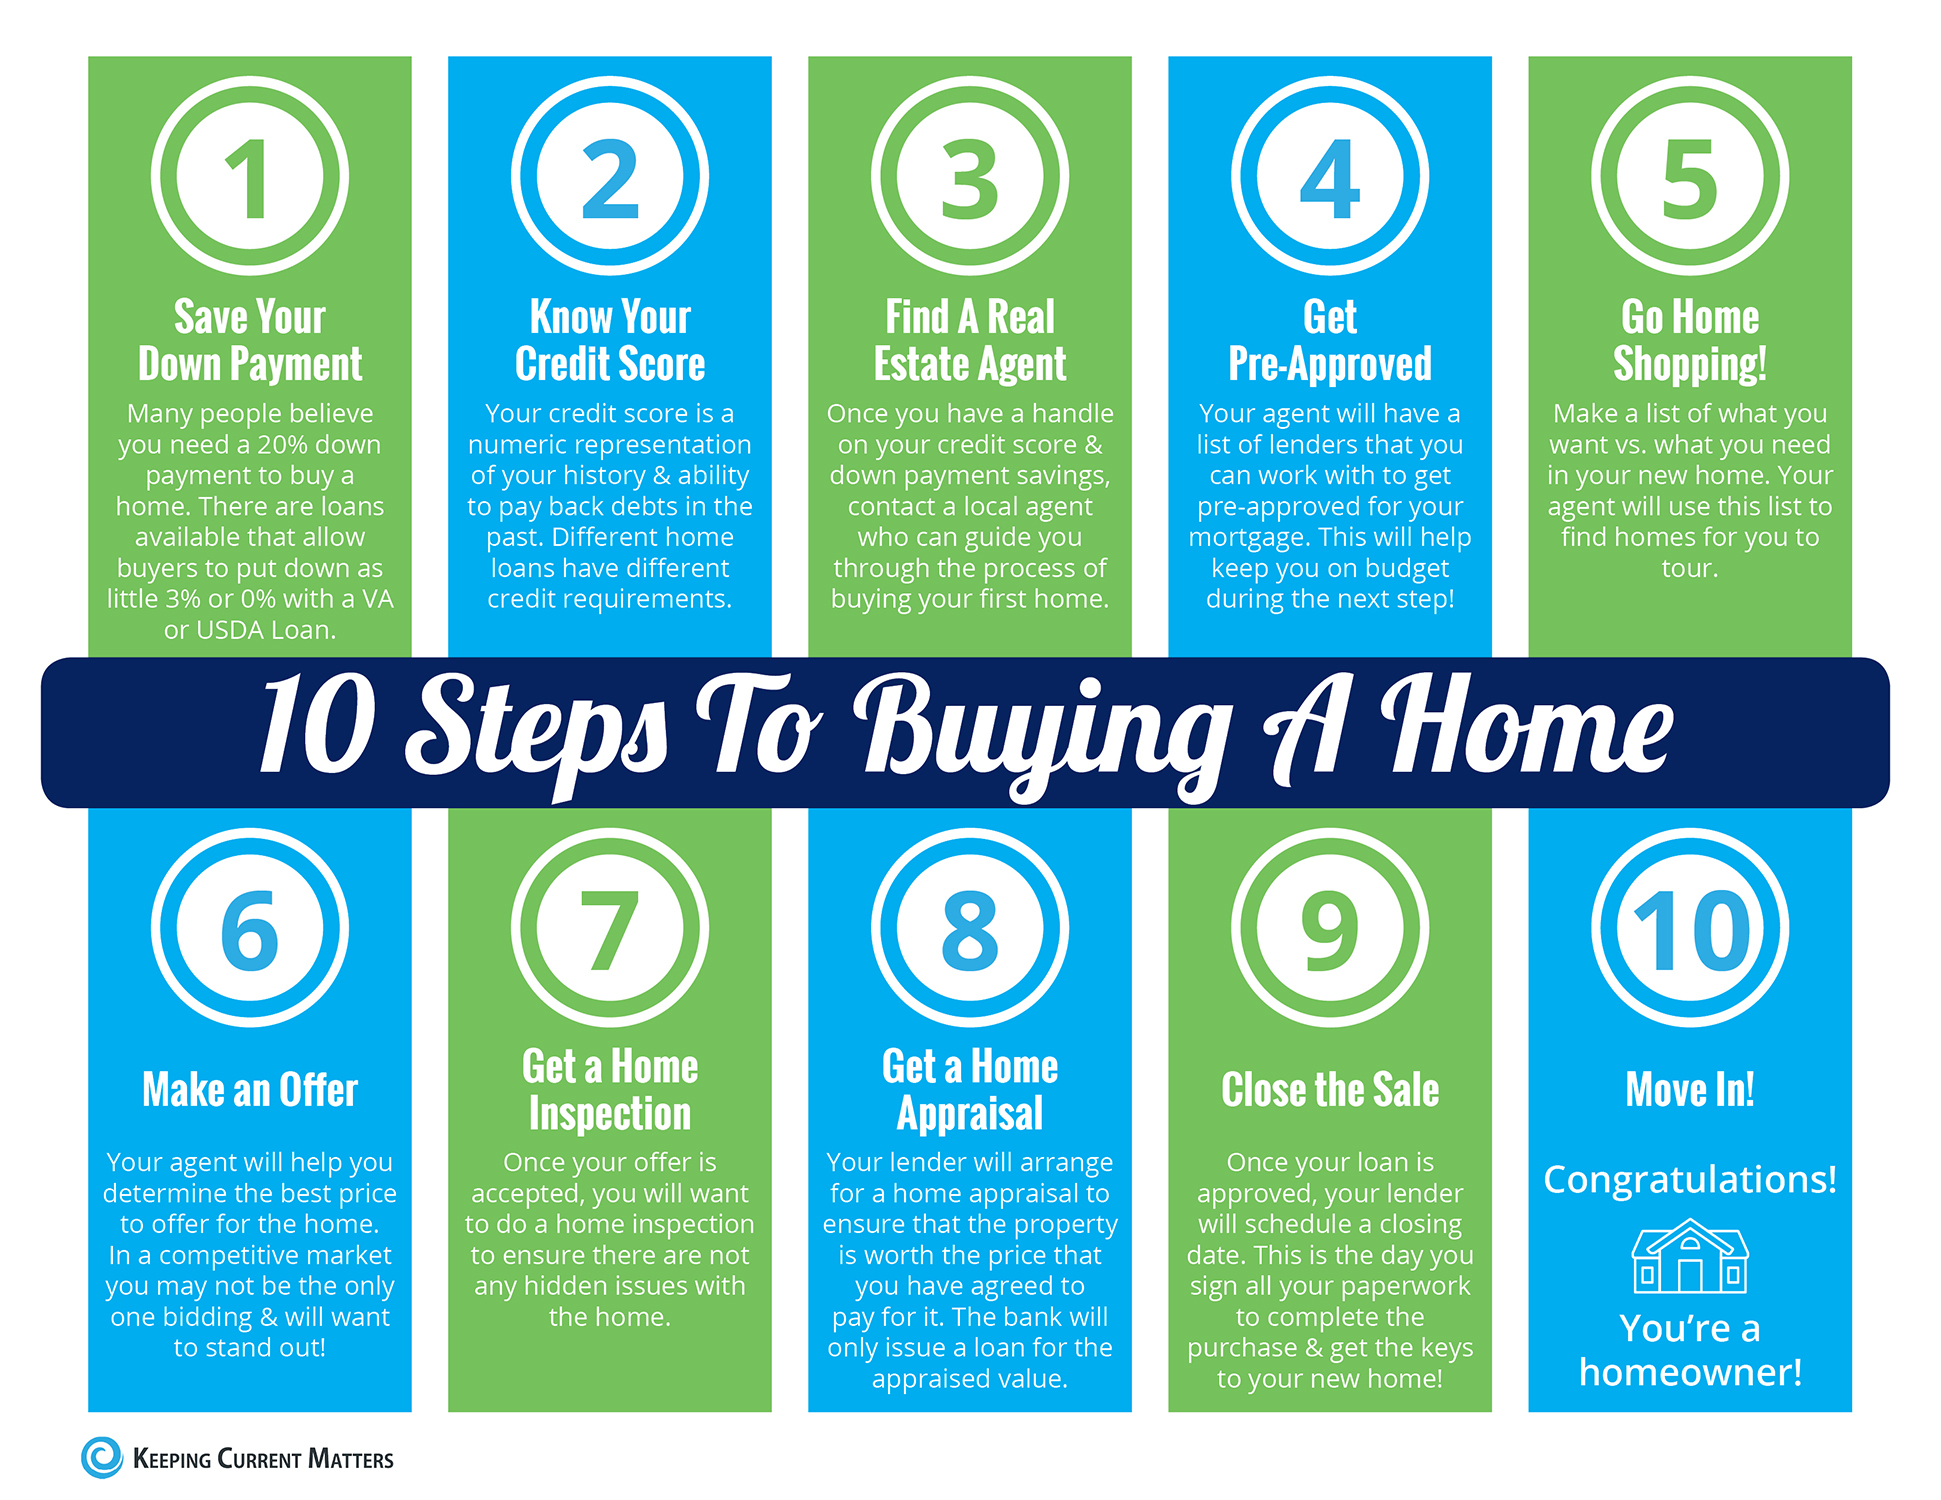 10 steps to buying a home.jpg